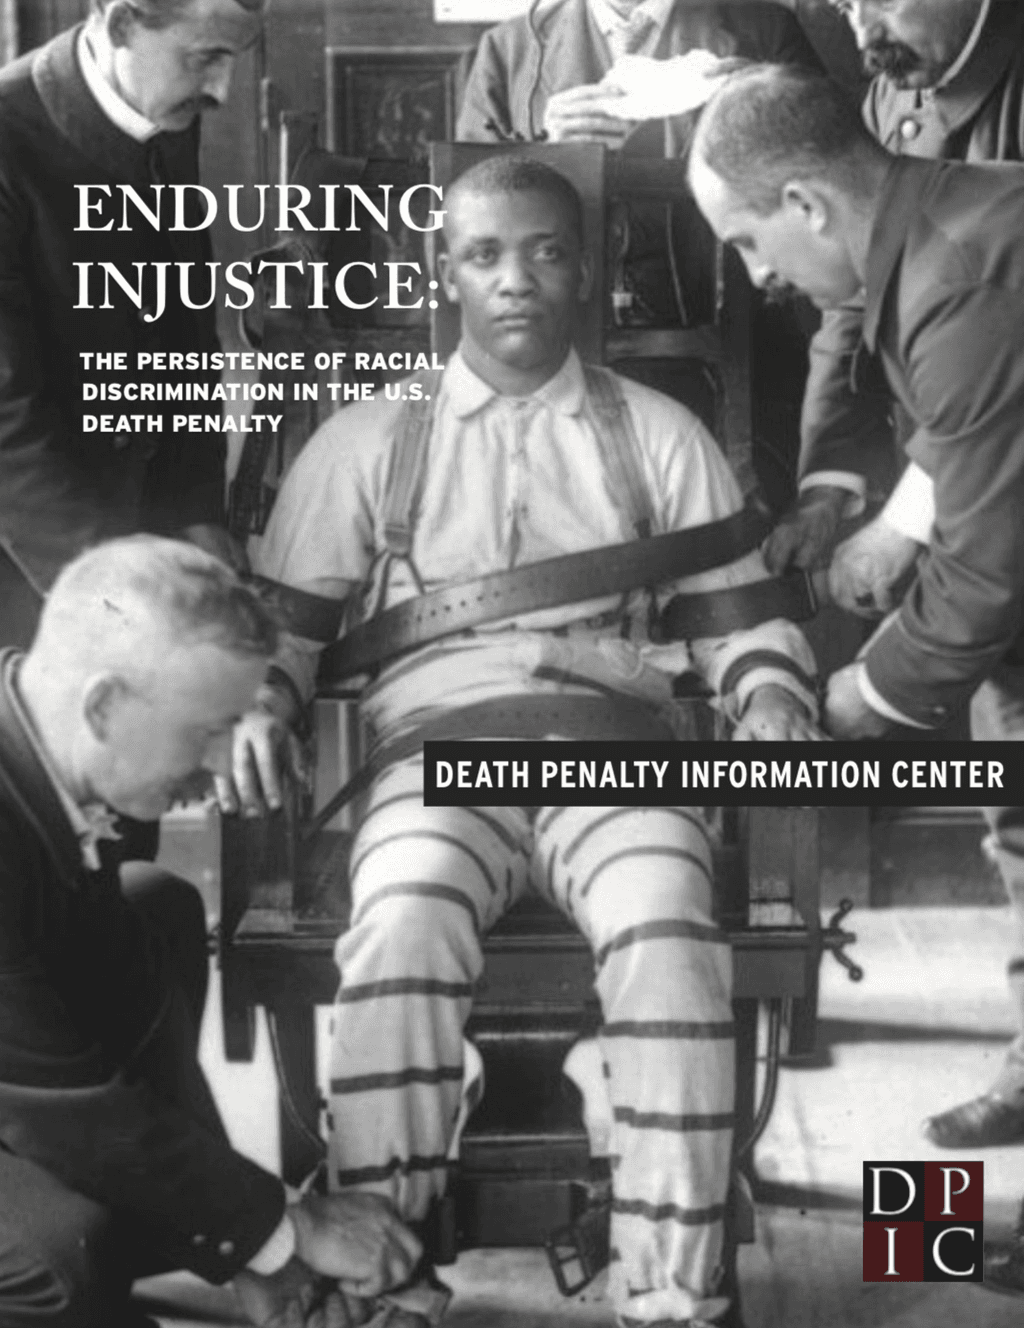 DPIC Commemorates Juneteenth: Our Report, Enduring Injustice, Details the Persistence of Racial Discrimination in the U.S. Death Penalty